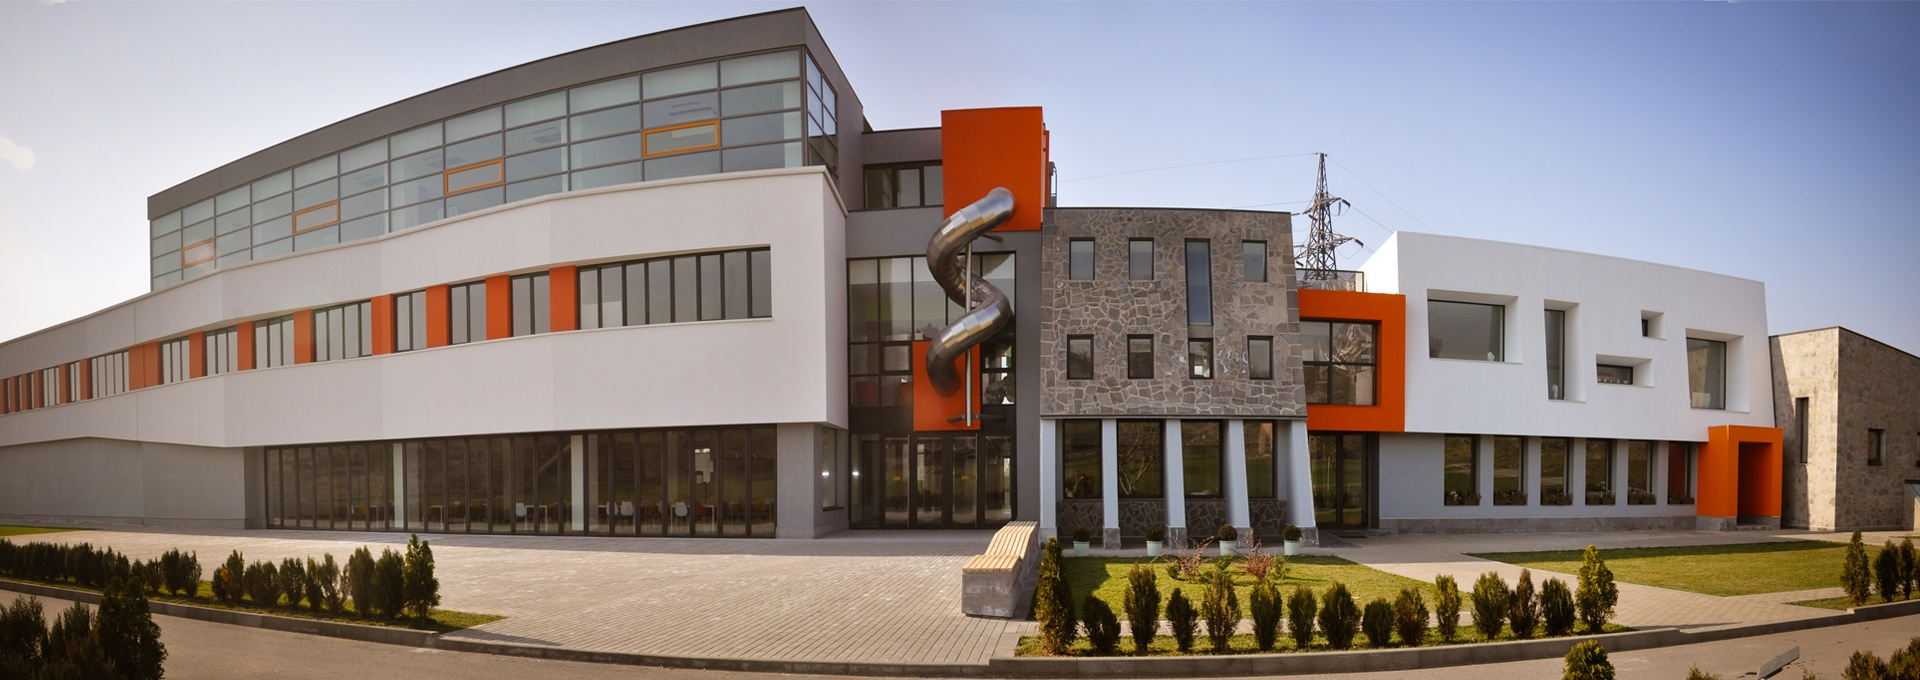 Ayb School, Buildings A and B